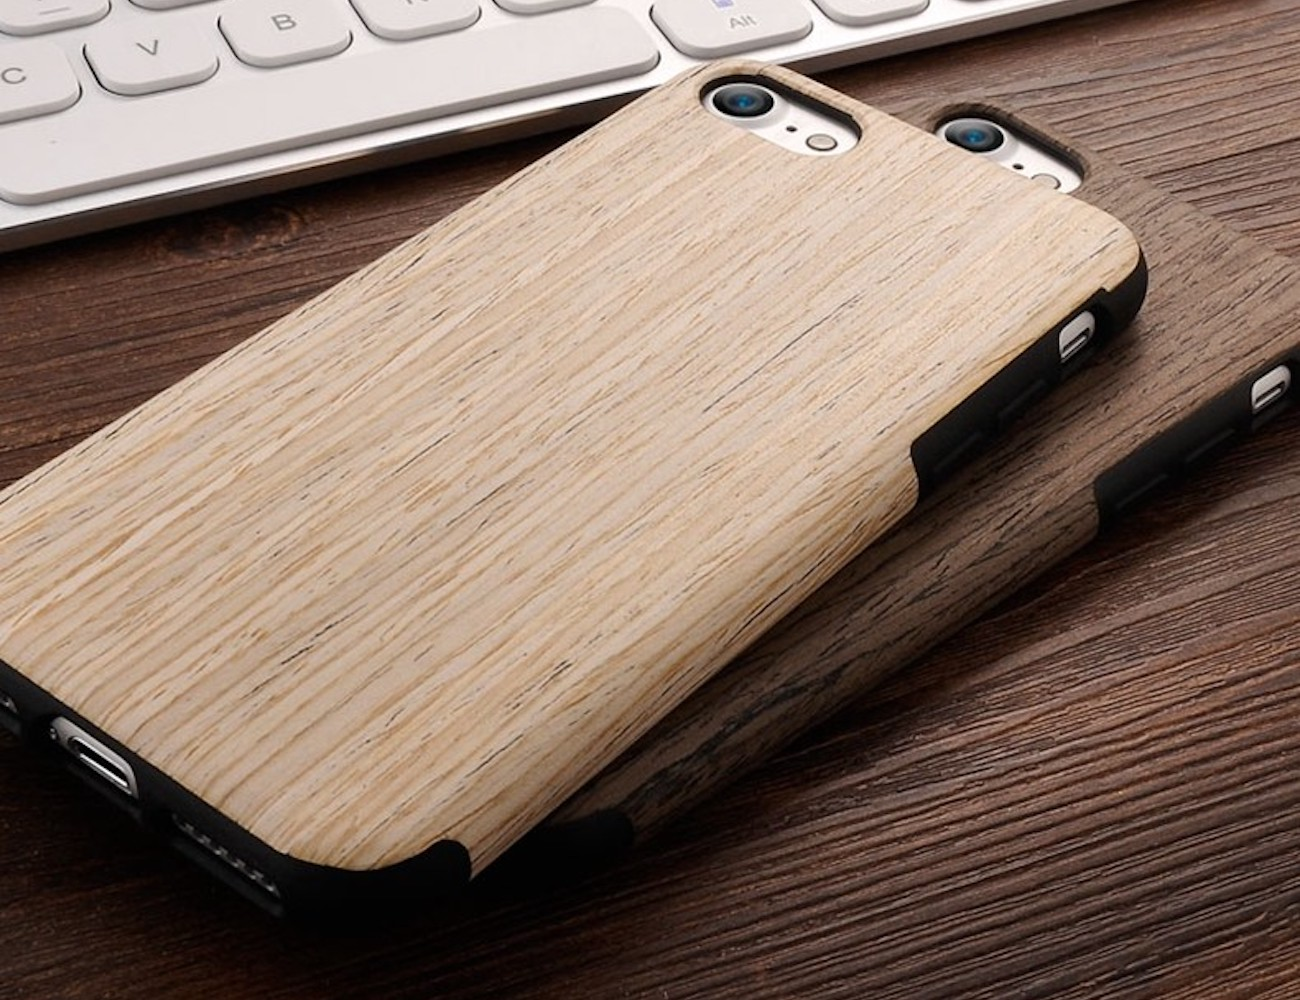 Natural Soft Silicone iPhone 7 Case